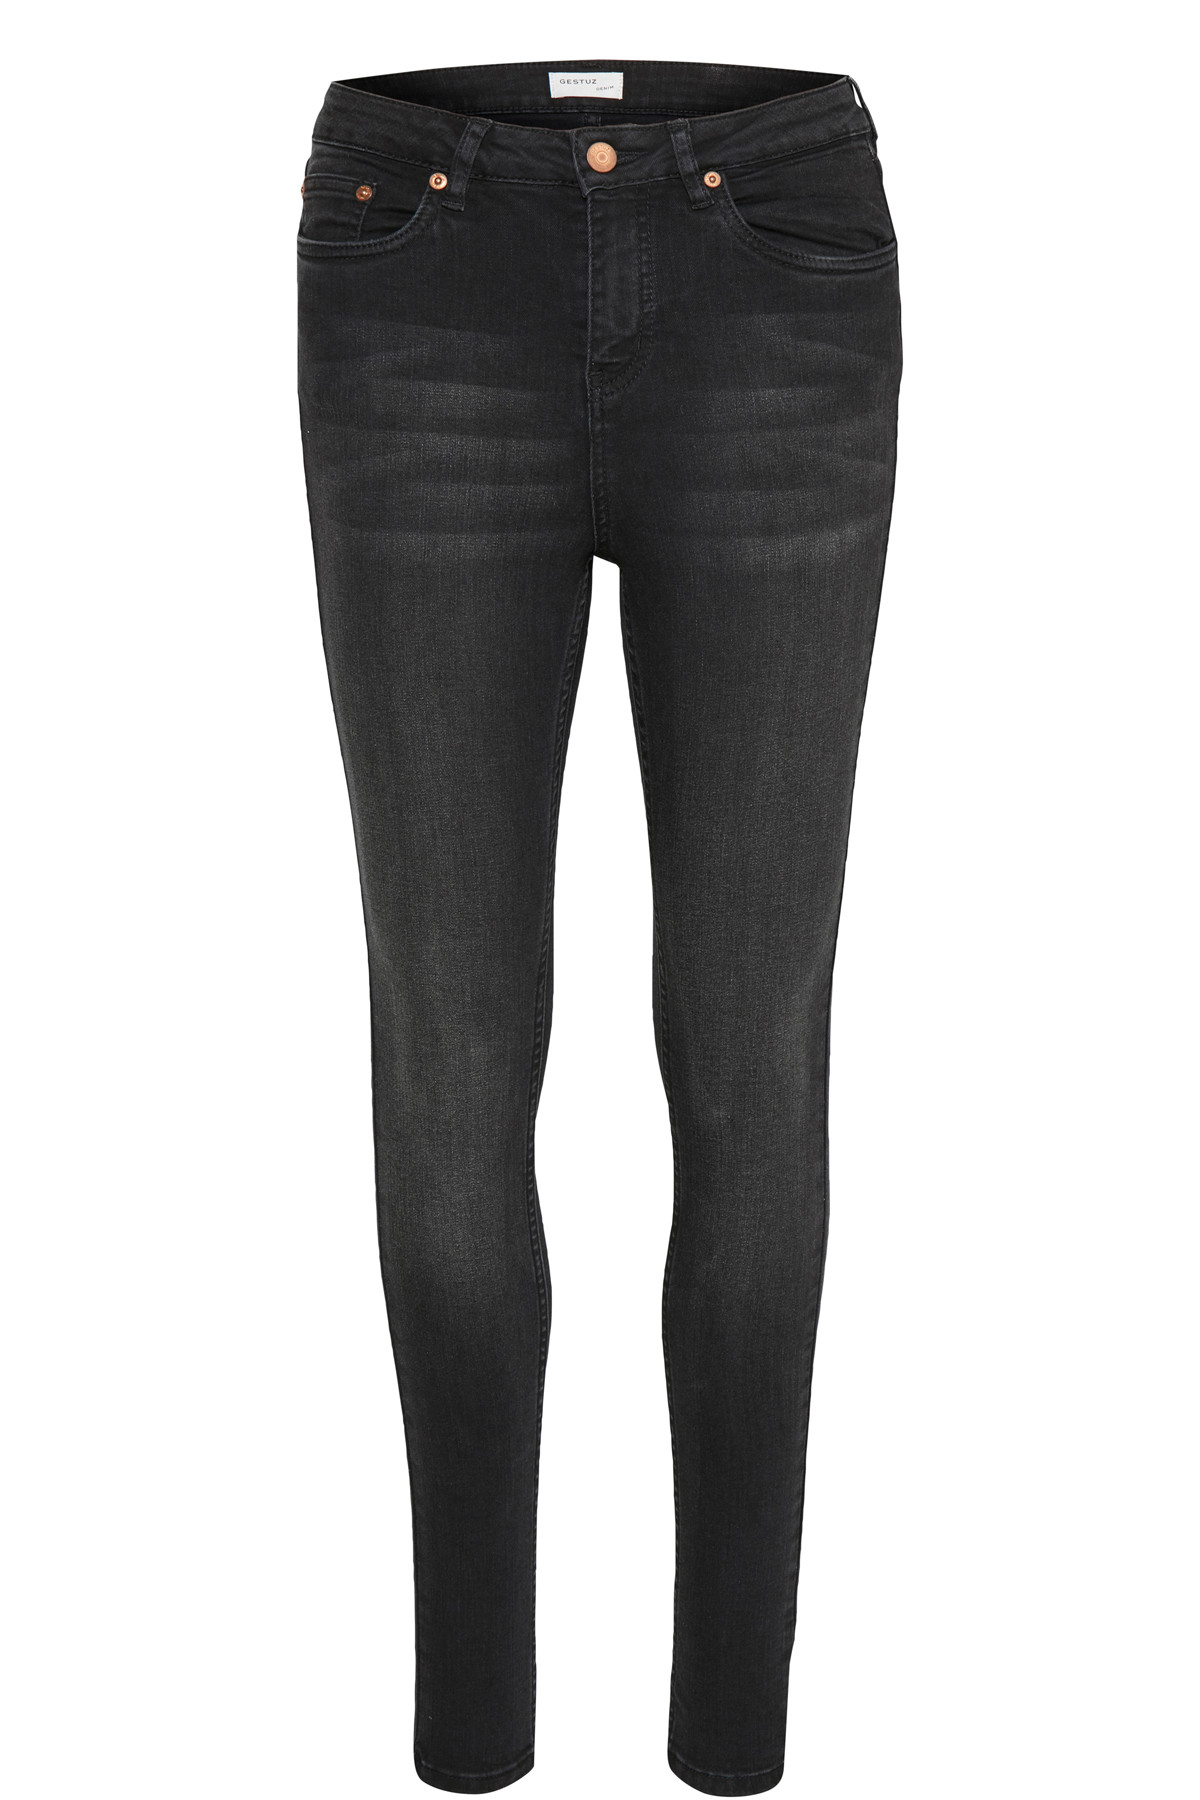 "Image of   GESTUZ EMILY JEANS 10900068 (Charcoal Grey 90899, ""32"", 29)"